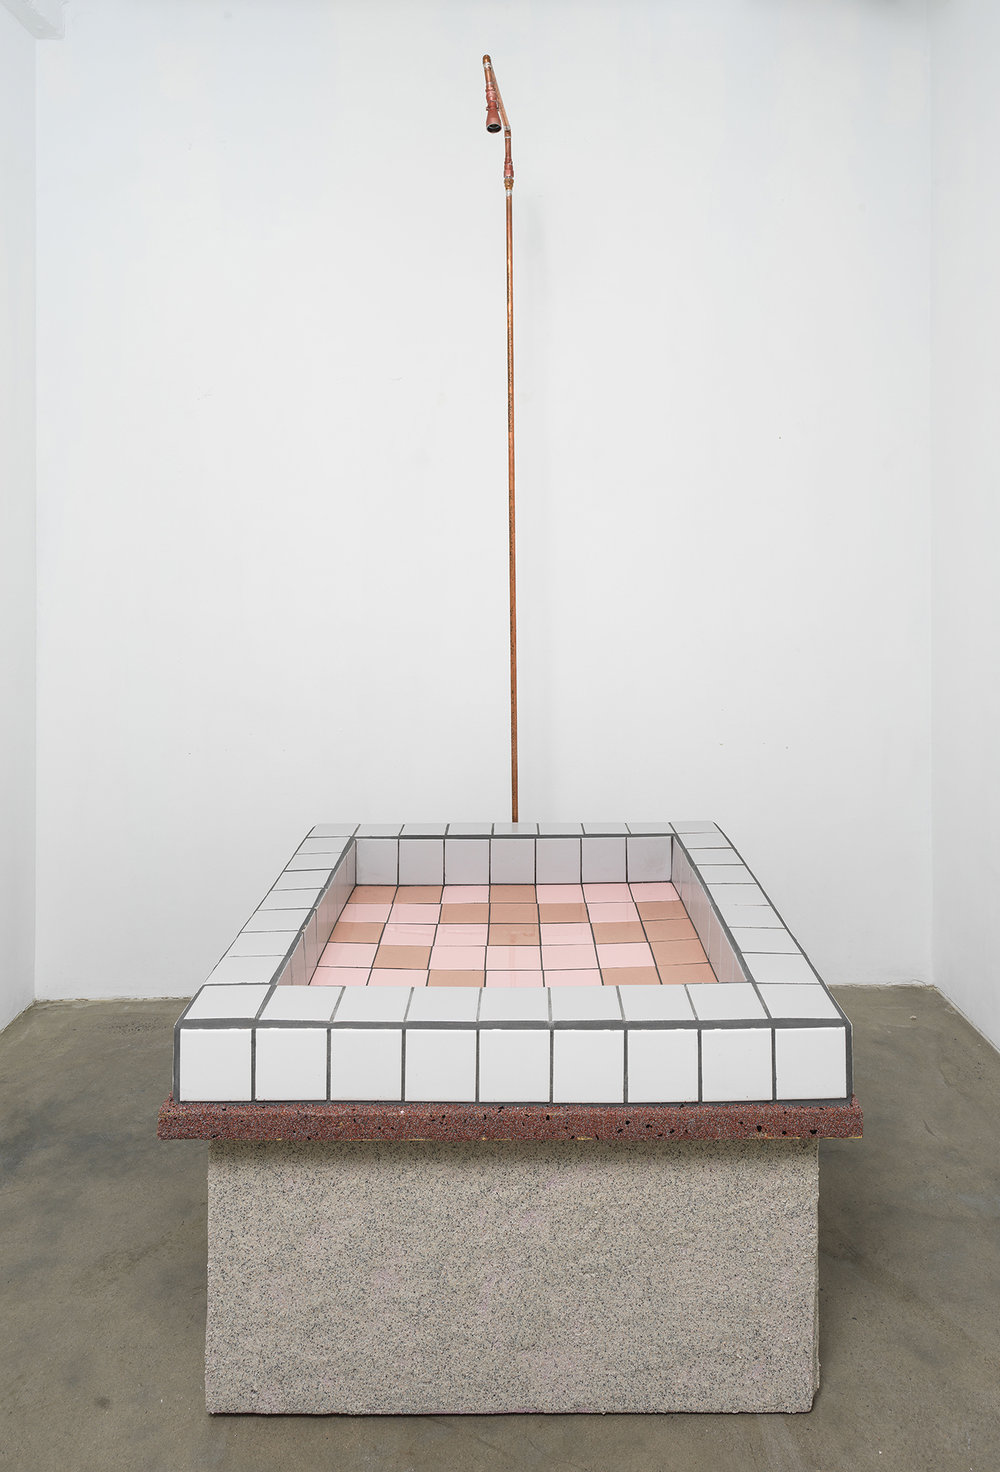 Rachel Higgins,  Public Fountain , 2018, Wood, pvc, cement, mortar, tiles, pump, copper plumbing components, polystyrene, synthetic stone, 96 x 42 x 42 inches, RH30